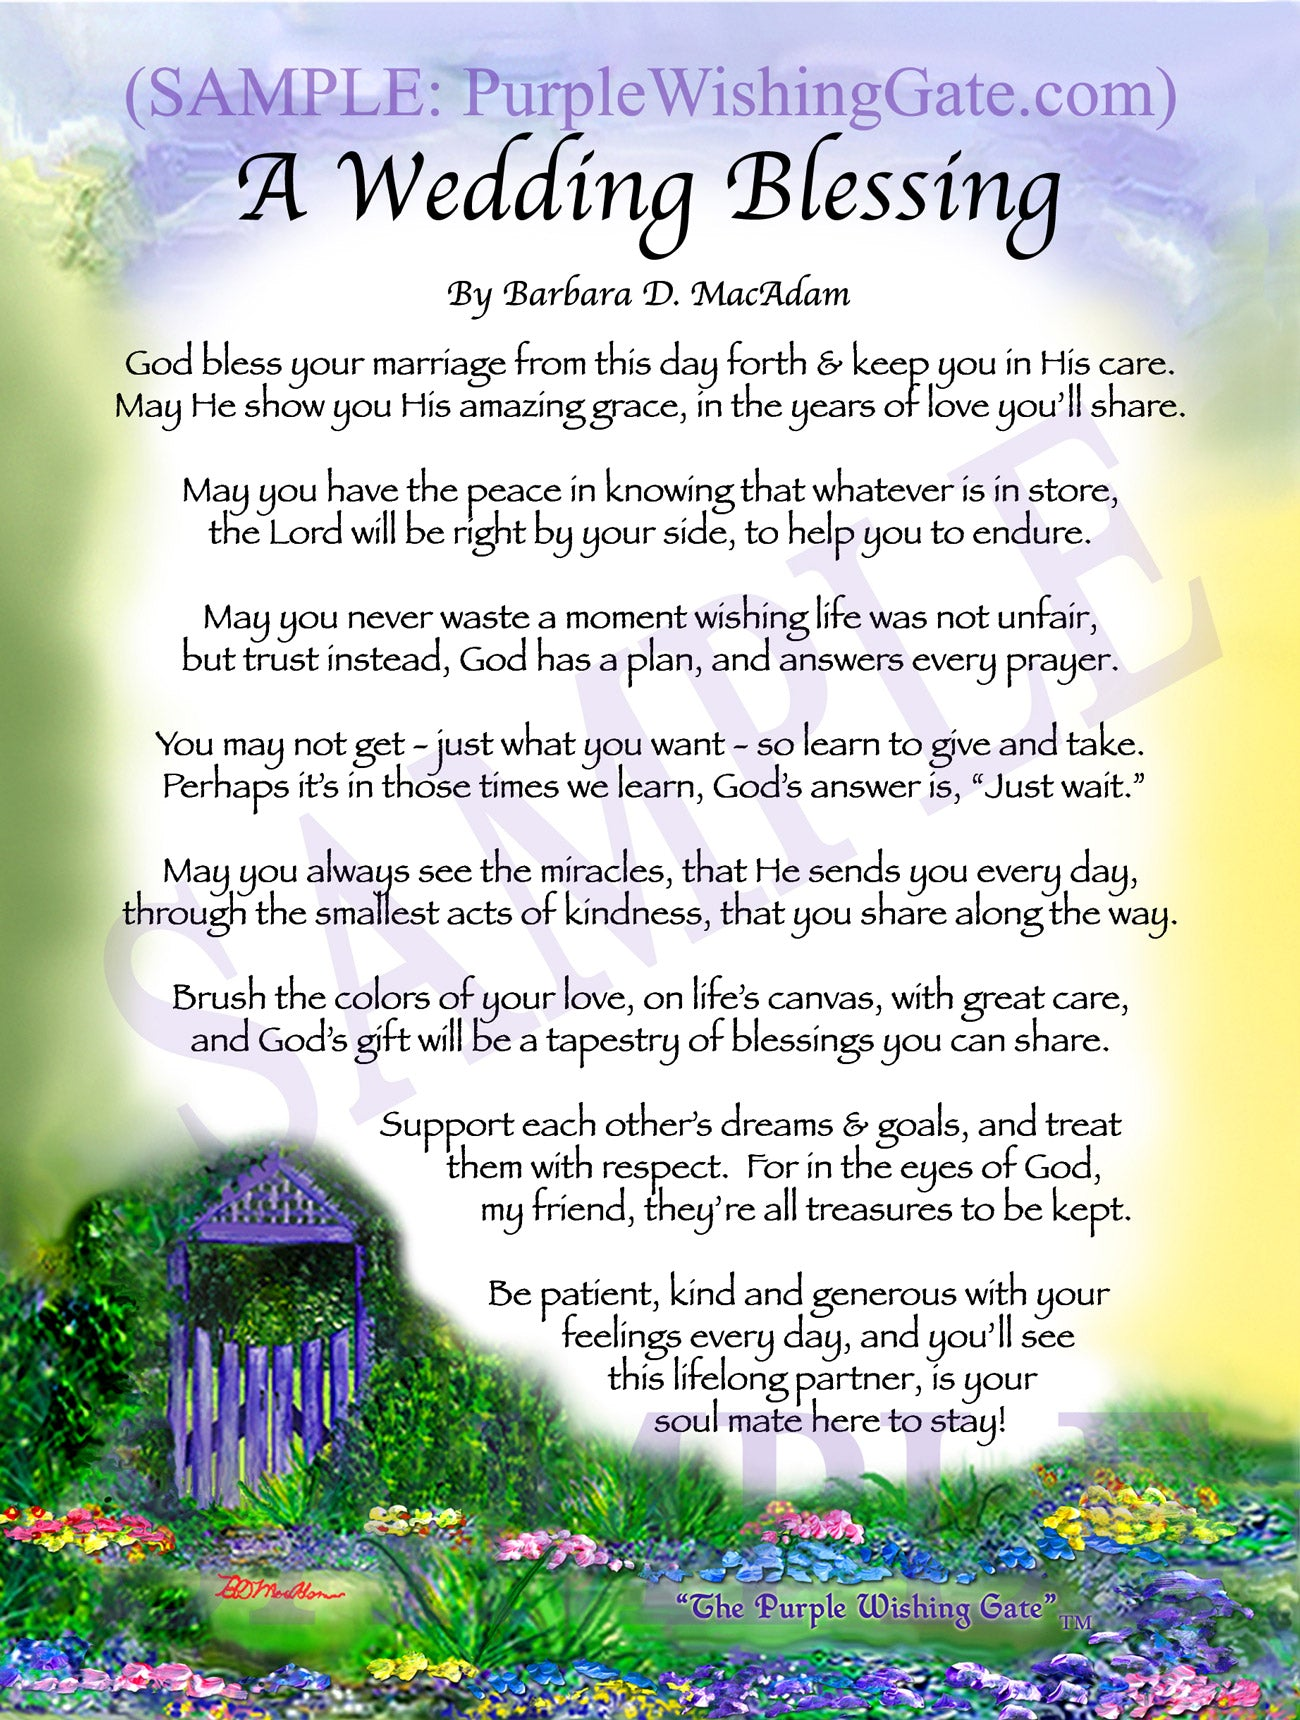 A Wedding Blessing - Wedding Gift - PurpleWishingGate.com